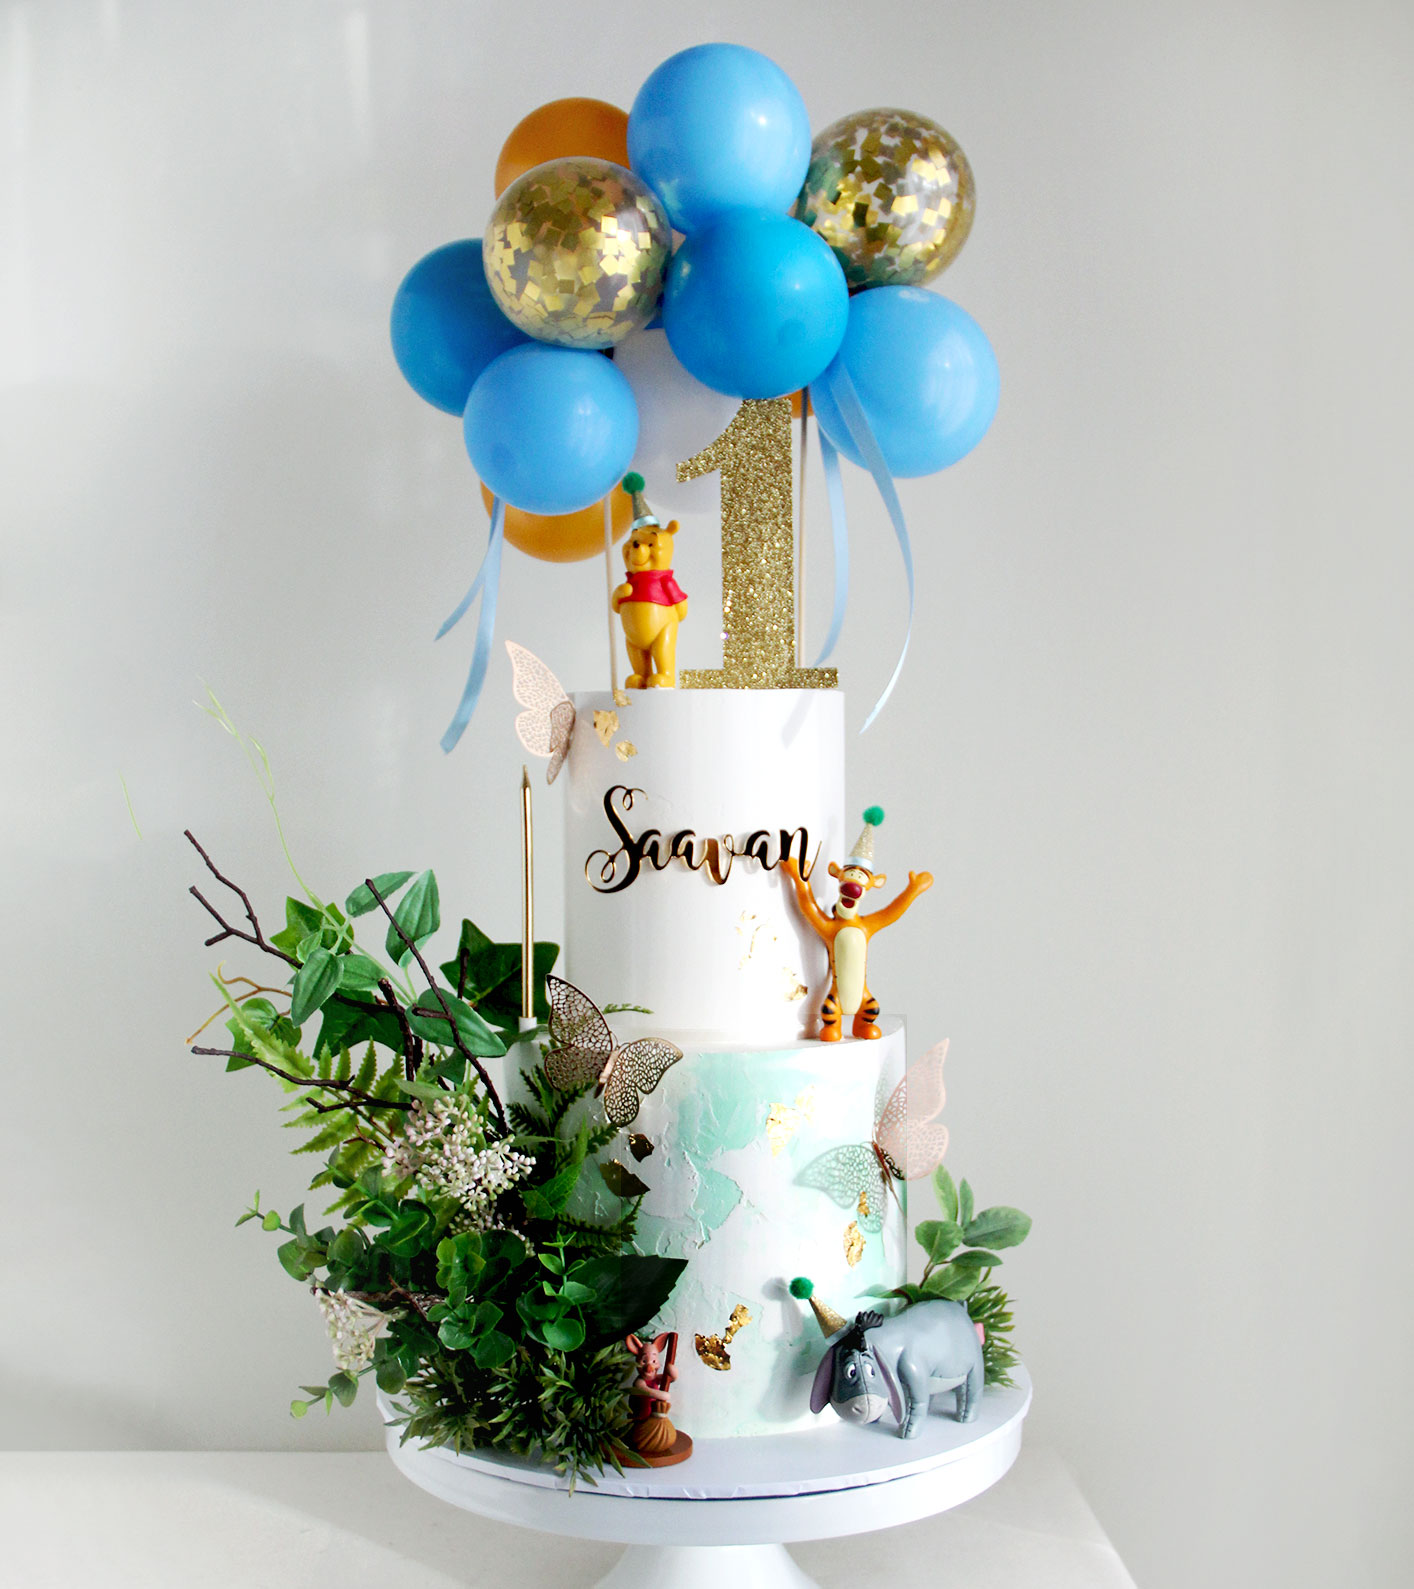 2 Tier Character Cake with Foliage & Blue Balloons